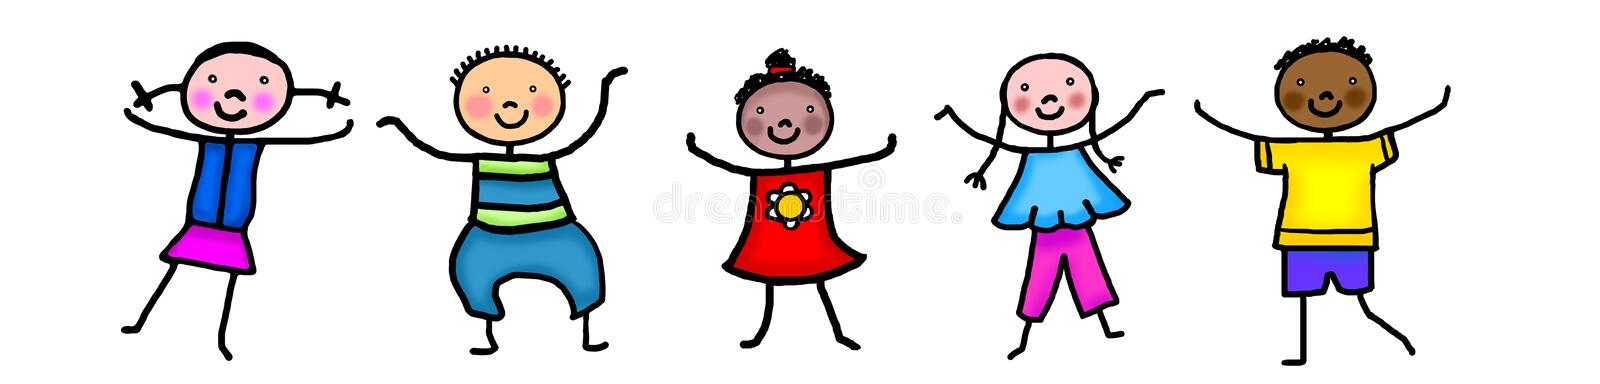 Stick figure kids dancing stock illustration